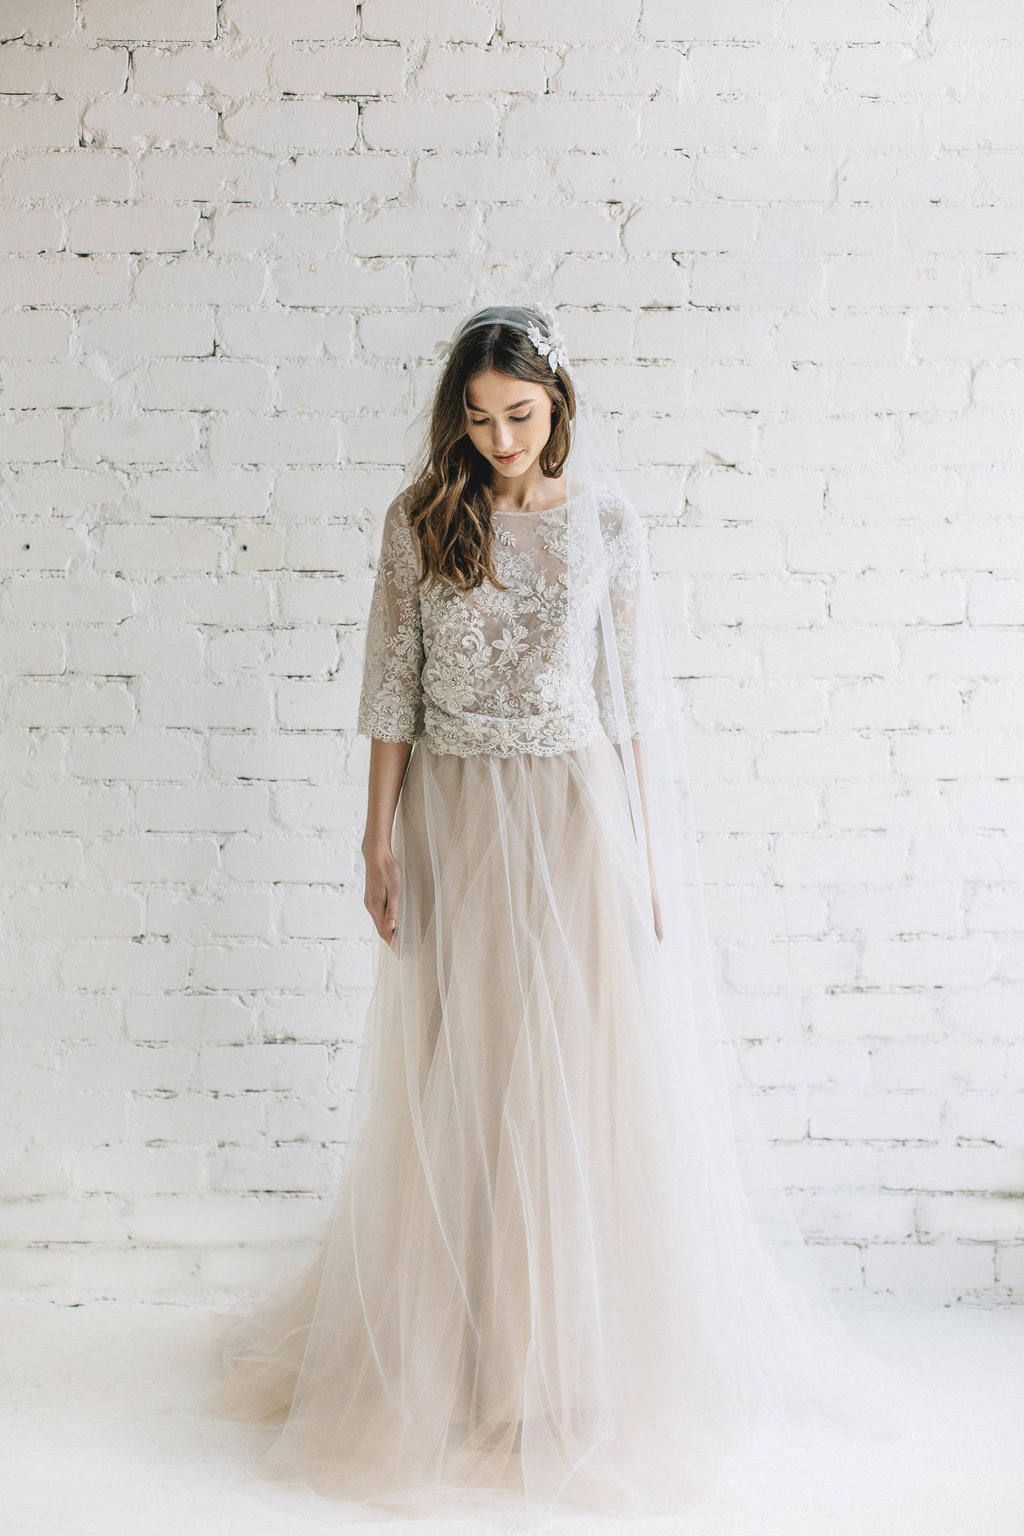 b58670656d Bohemian Wedding Dress in Ivory Lace - PEONY Peony top created of couture  beaded lace and lined with soft thin nude floral french lace .